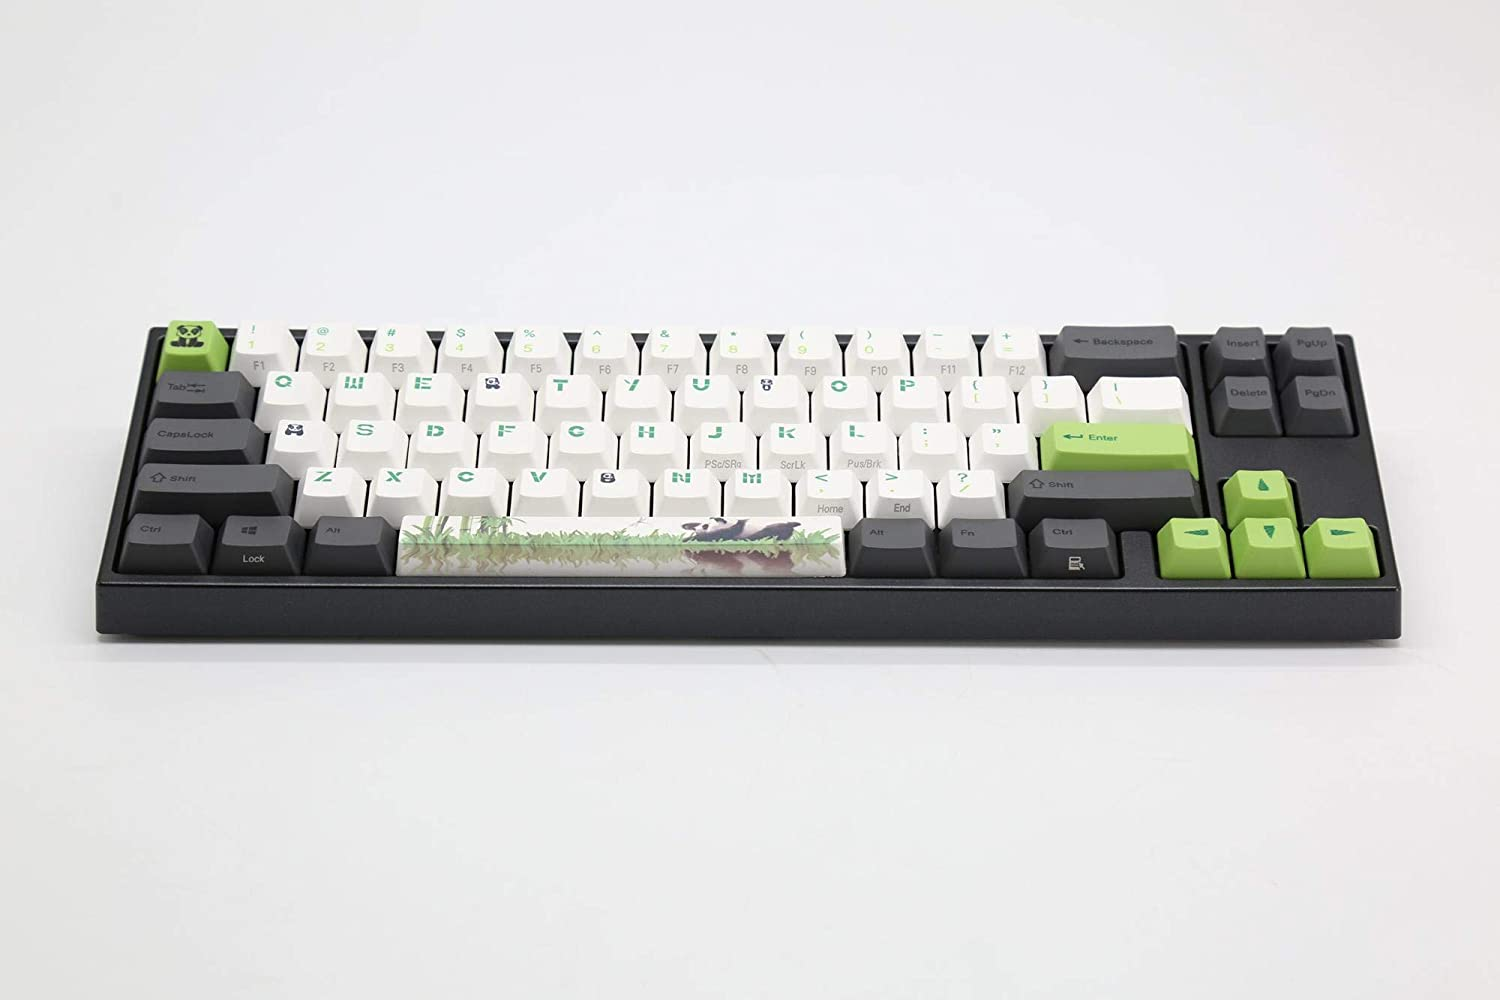 Best Ducky Keyboard For Gaming